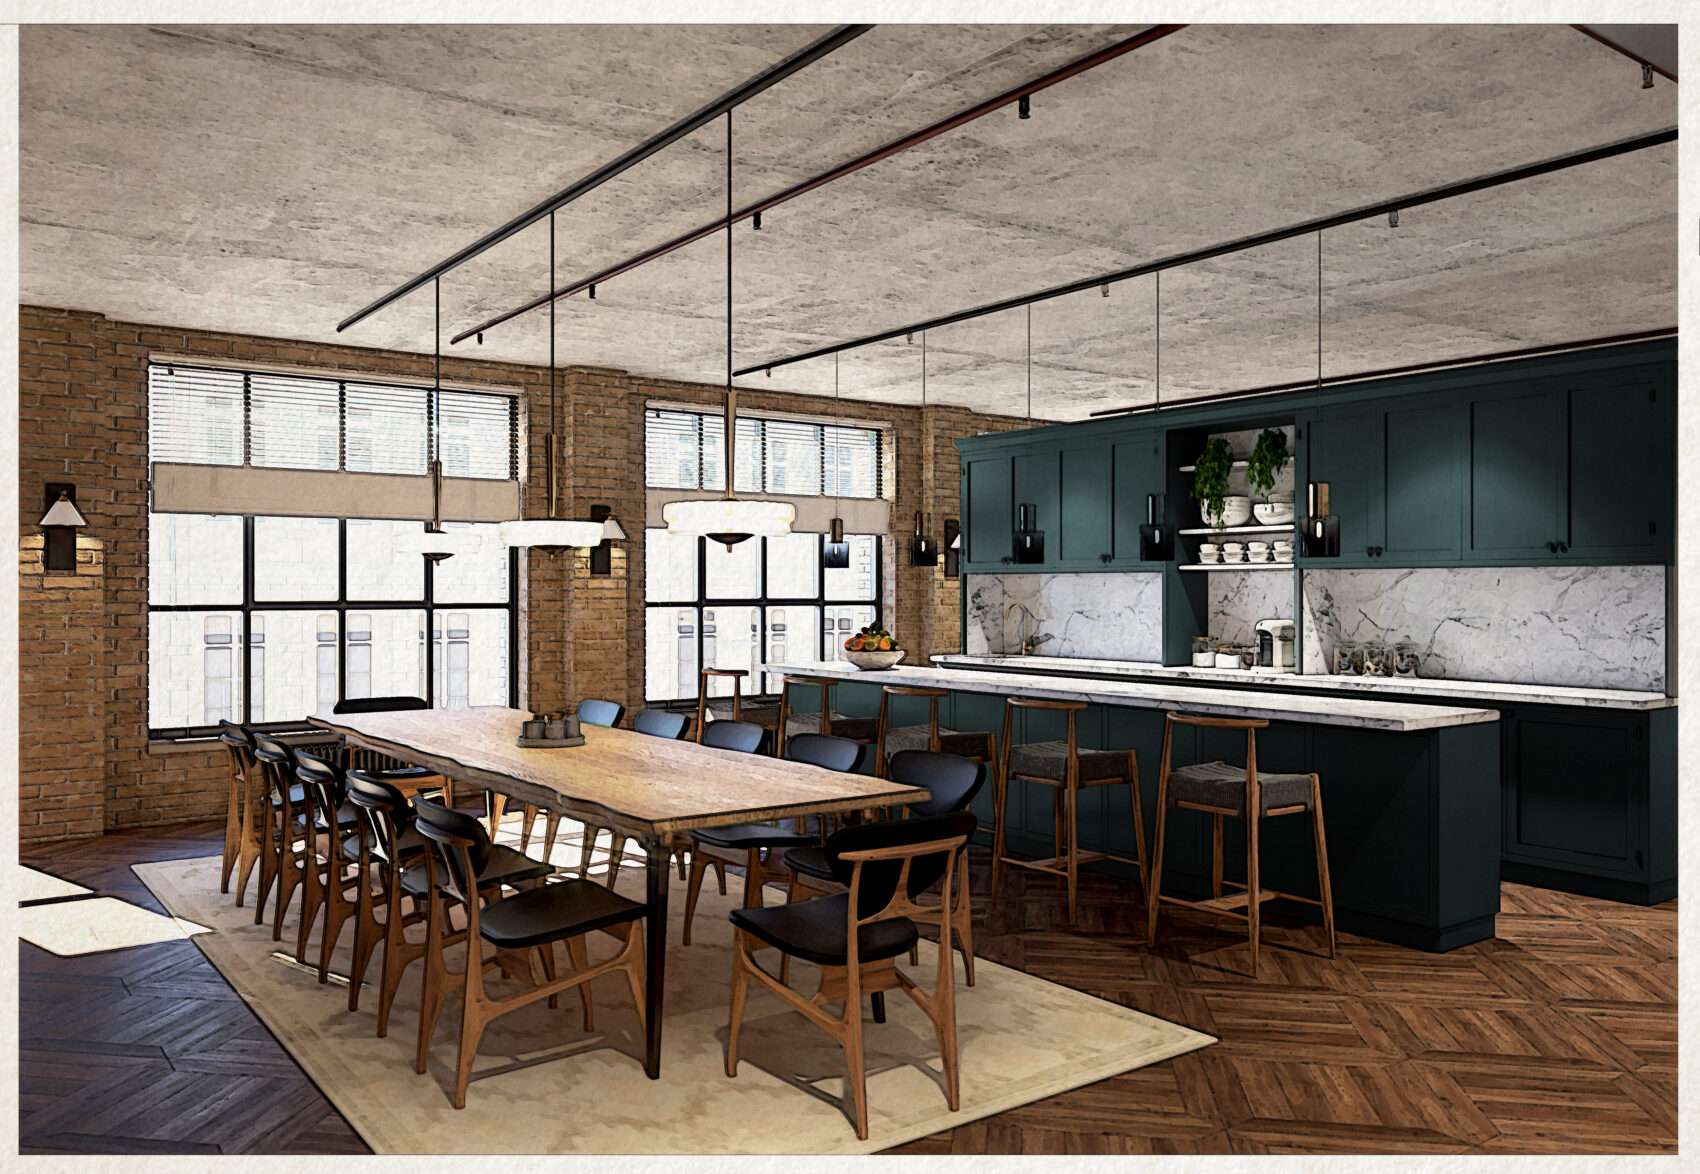 Working From, The Hoxton hotel